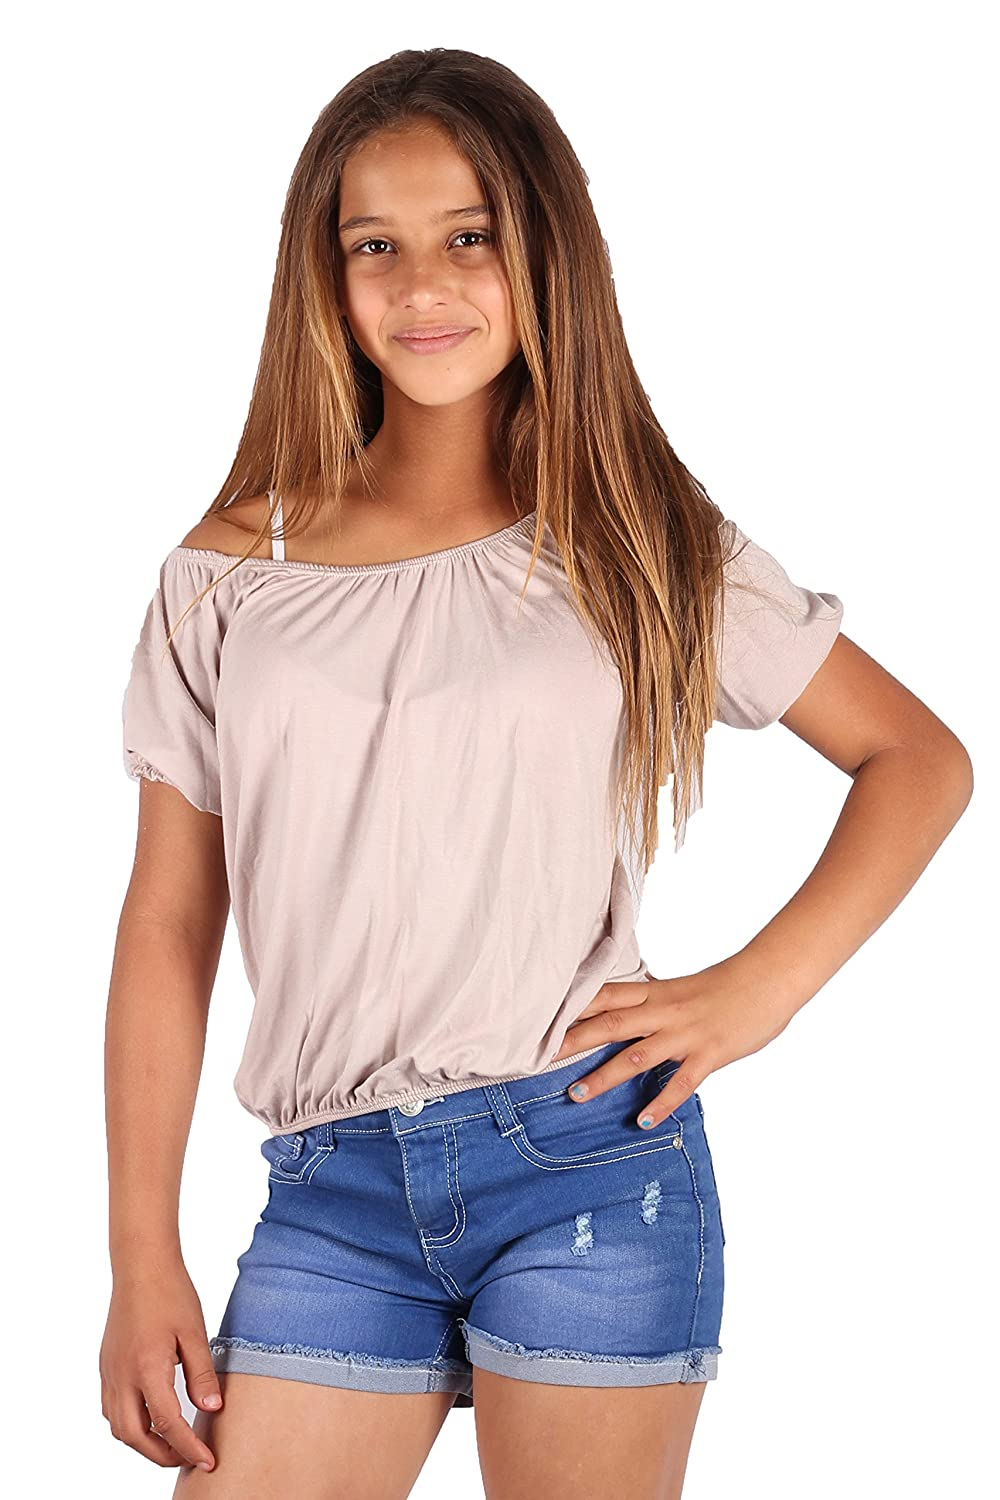 Lori/&Jane Short Sleeve Top Loose Fit Top for Girls Gathered Off Shoulder Made in USA